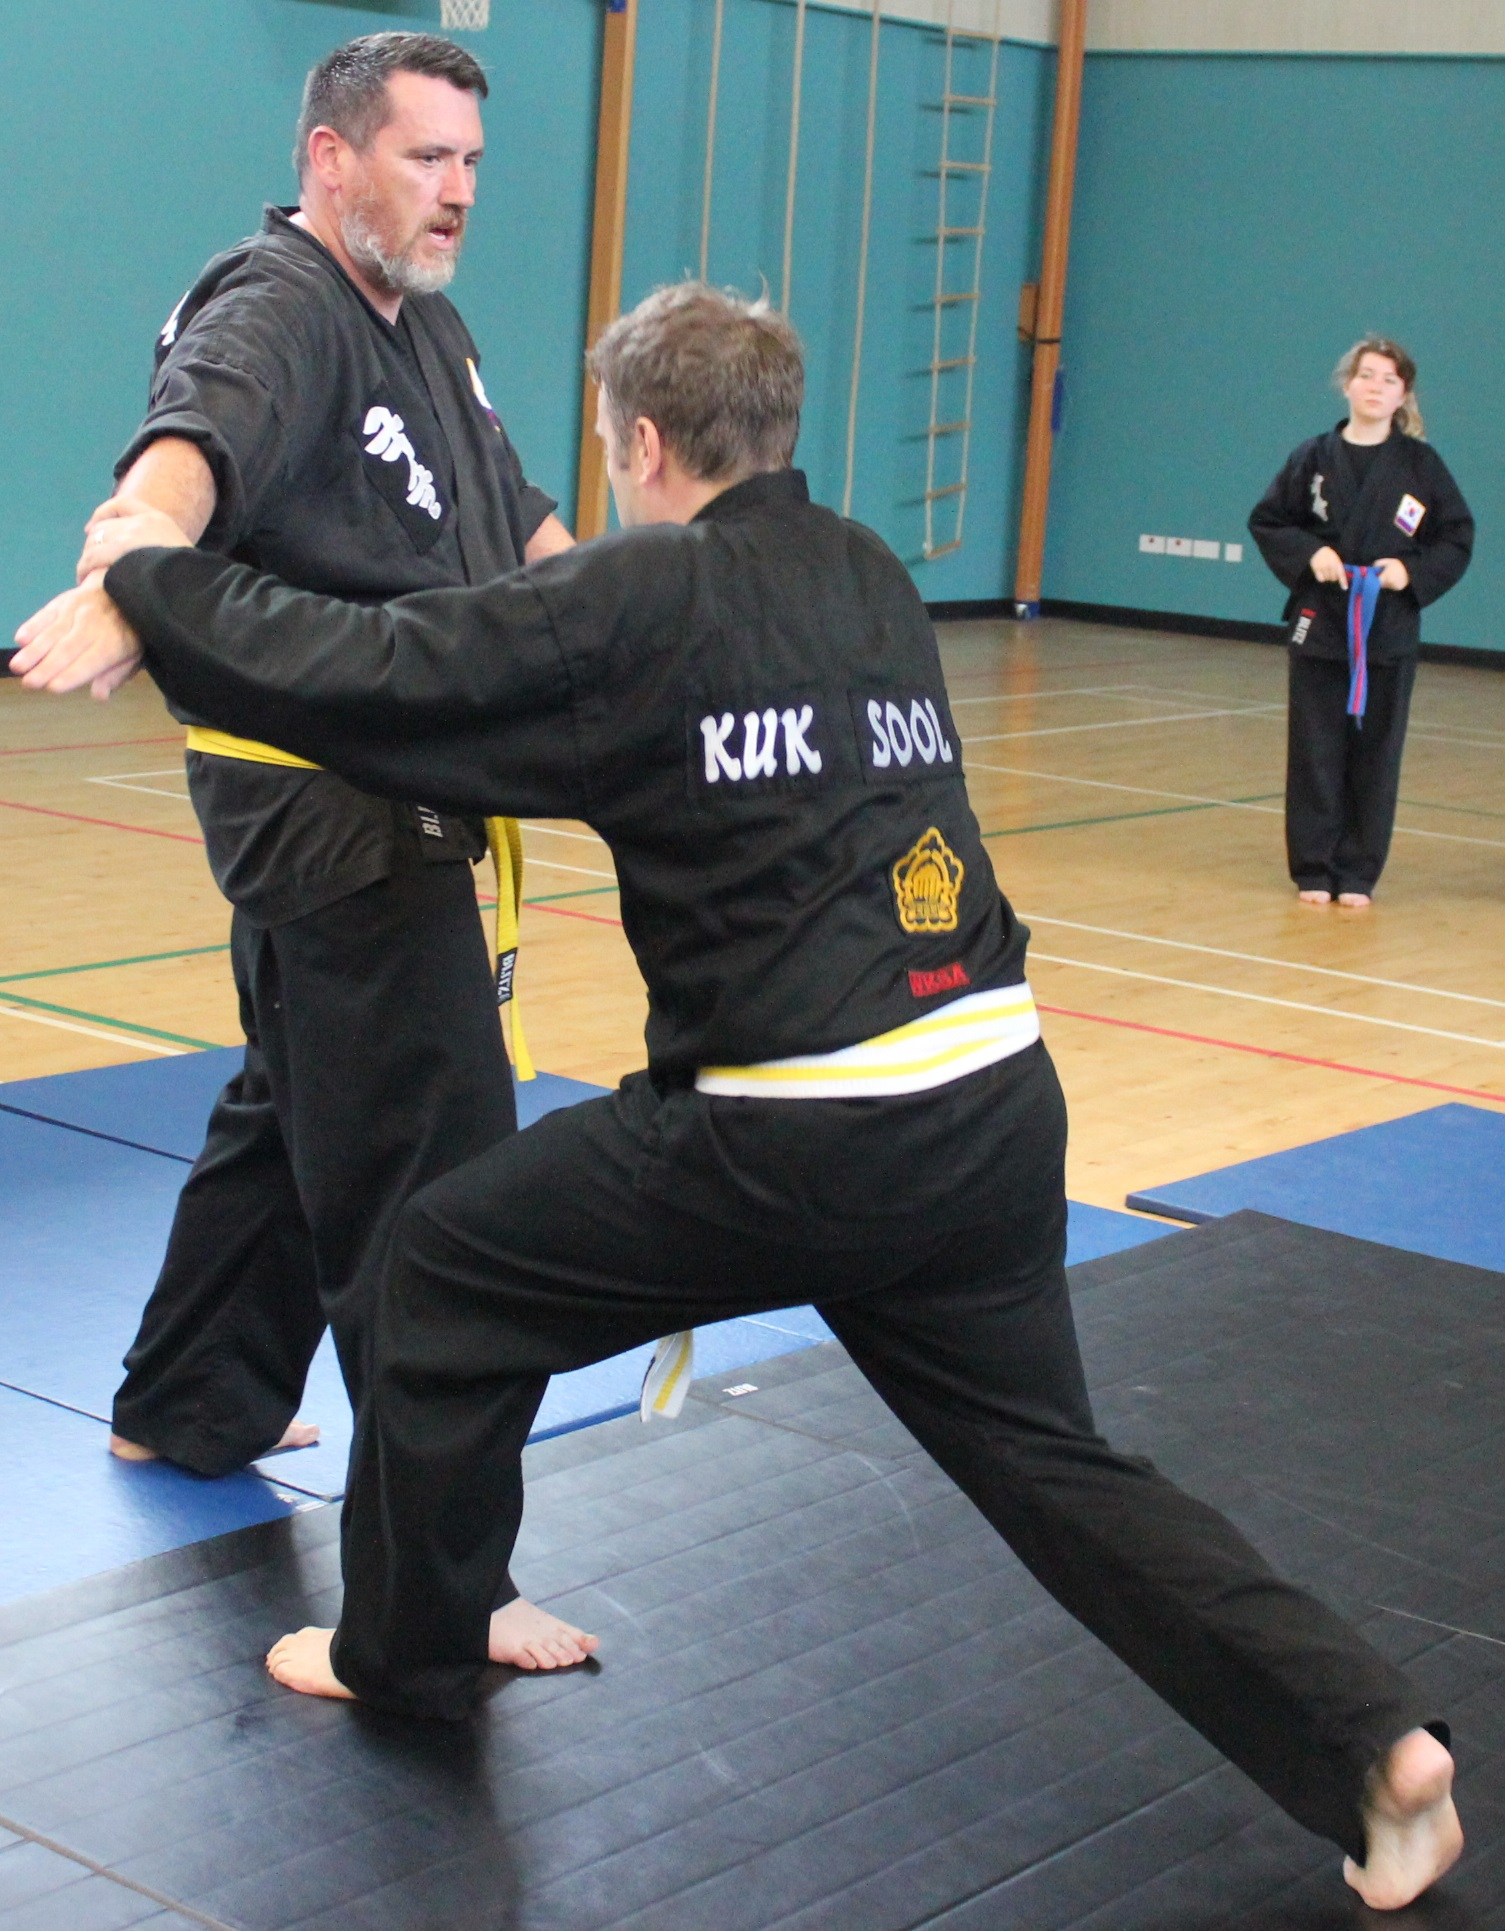 techniques of kuk sool won in Perth